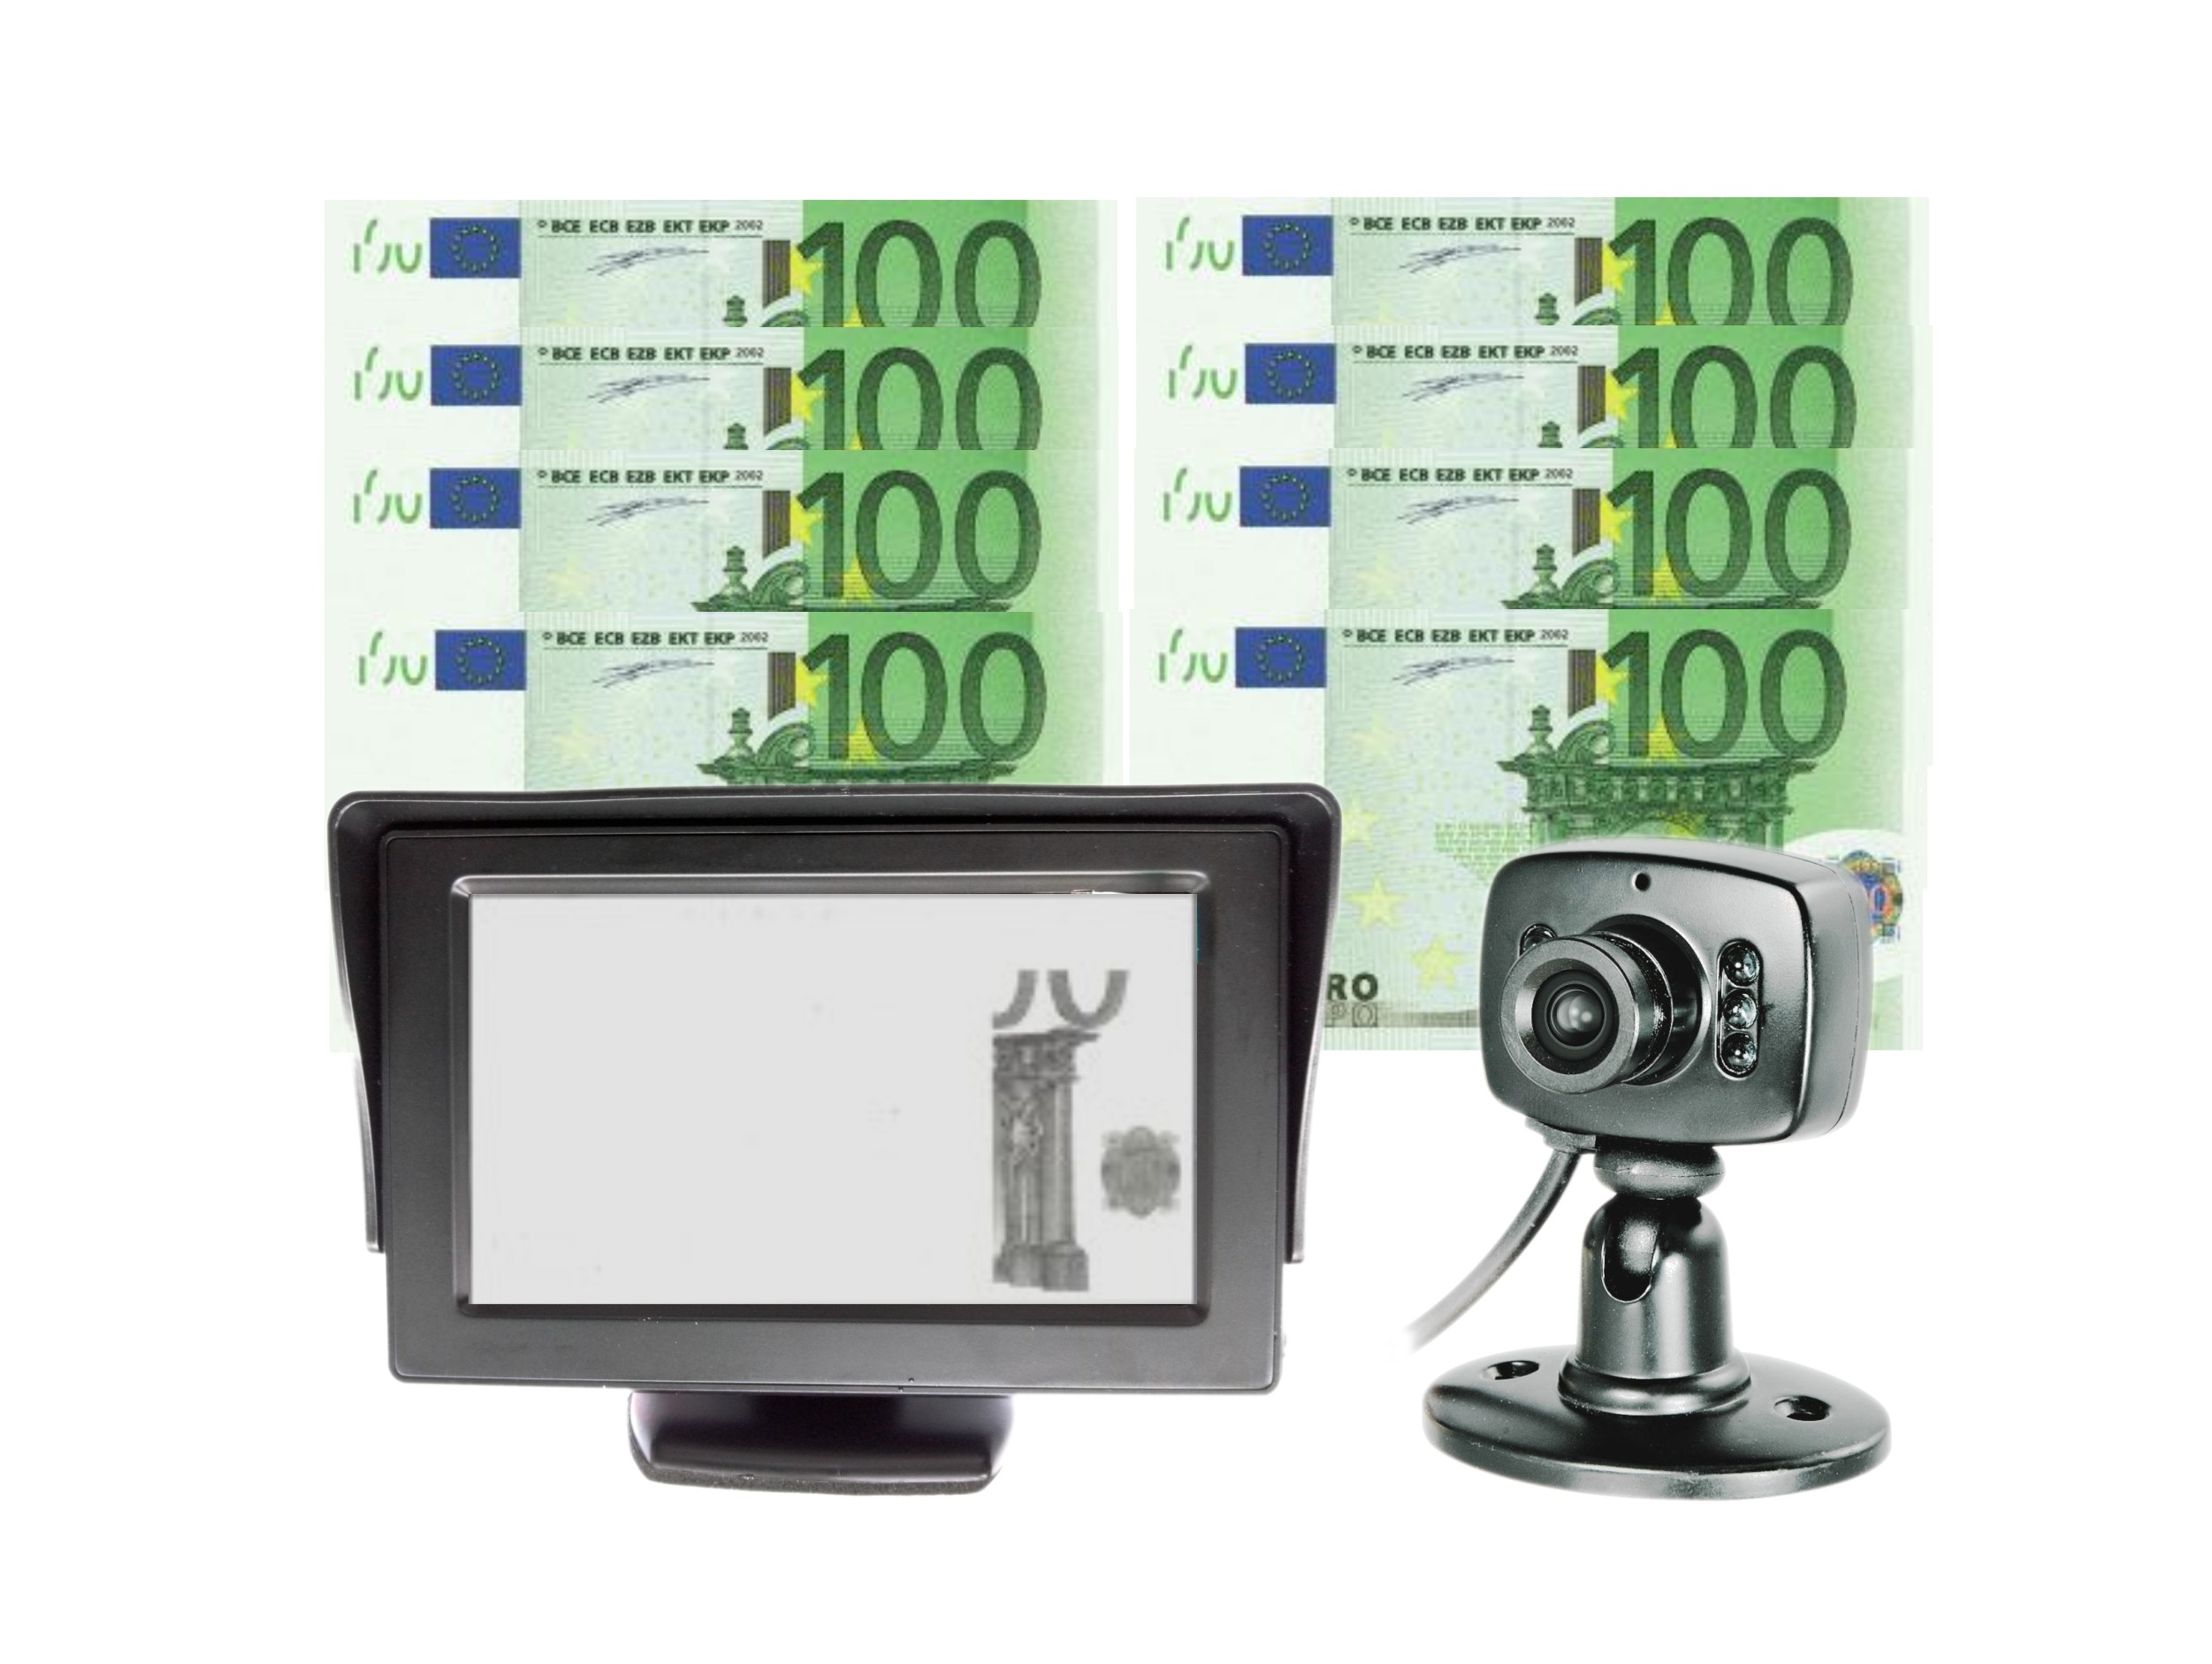 currency verifier financial equipment installation is easy